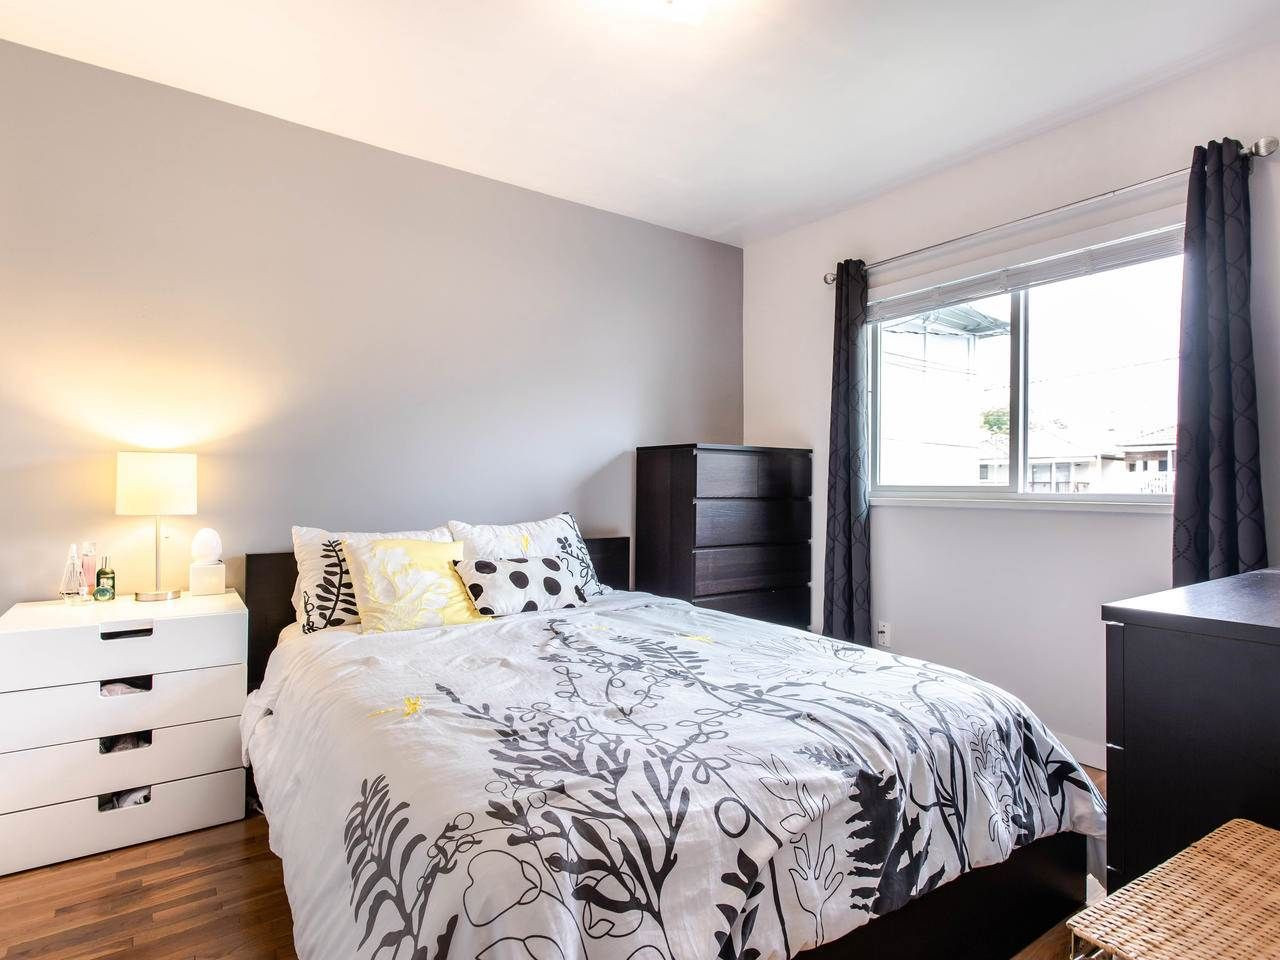 Photo 12: Photos: 4653 UNION STREET in Burnaby: Capitol Hill BN House for sale (Burnaby North)  : MLS®# R2493161